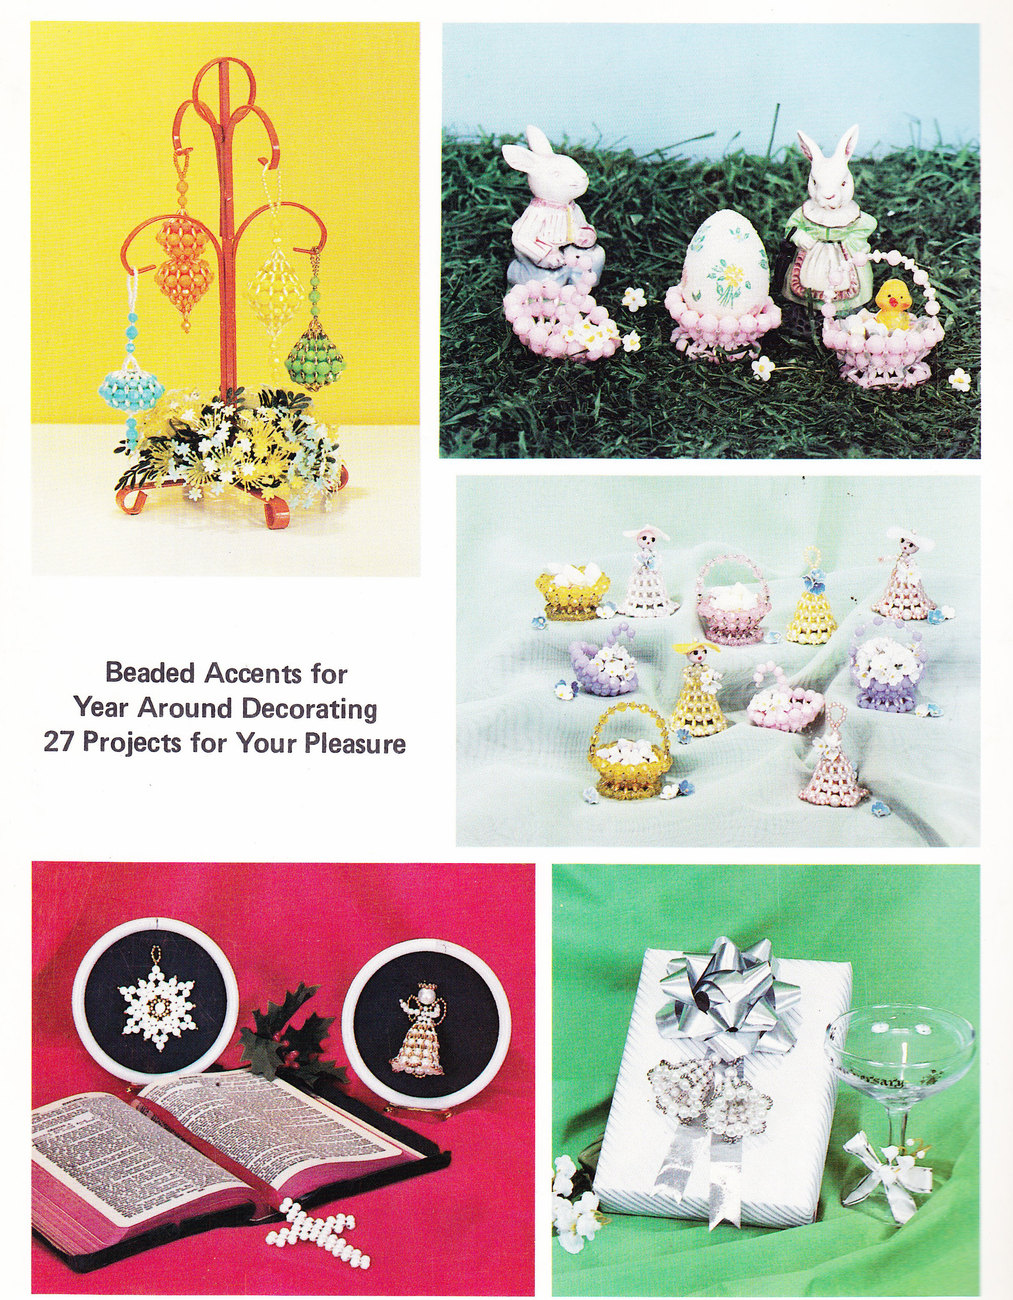 BEADS THAT PLEASE QUALITY CRAFT INSTRUCTIONS #PD-7010